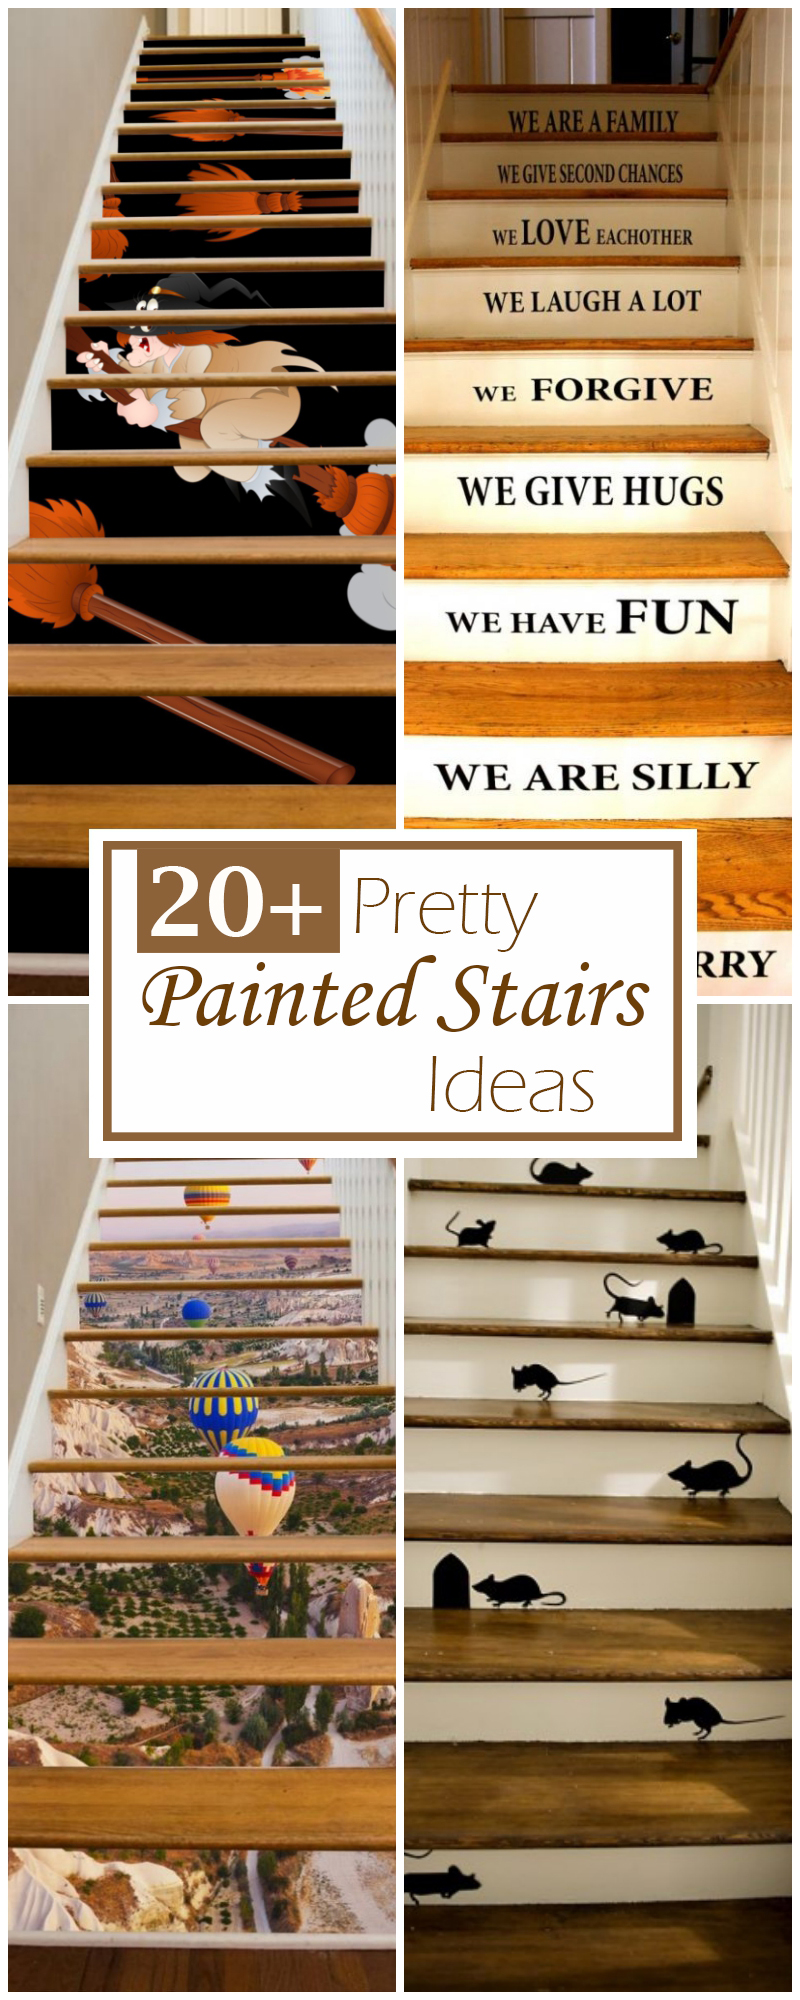 23 Pretty Painted Stairs Ideas